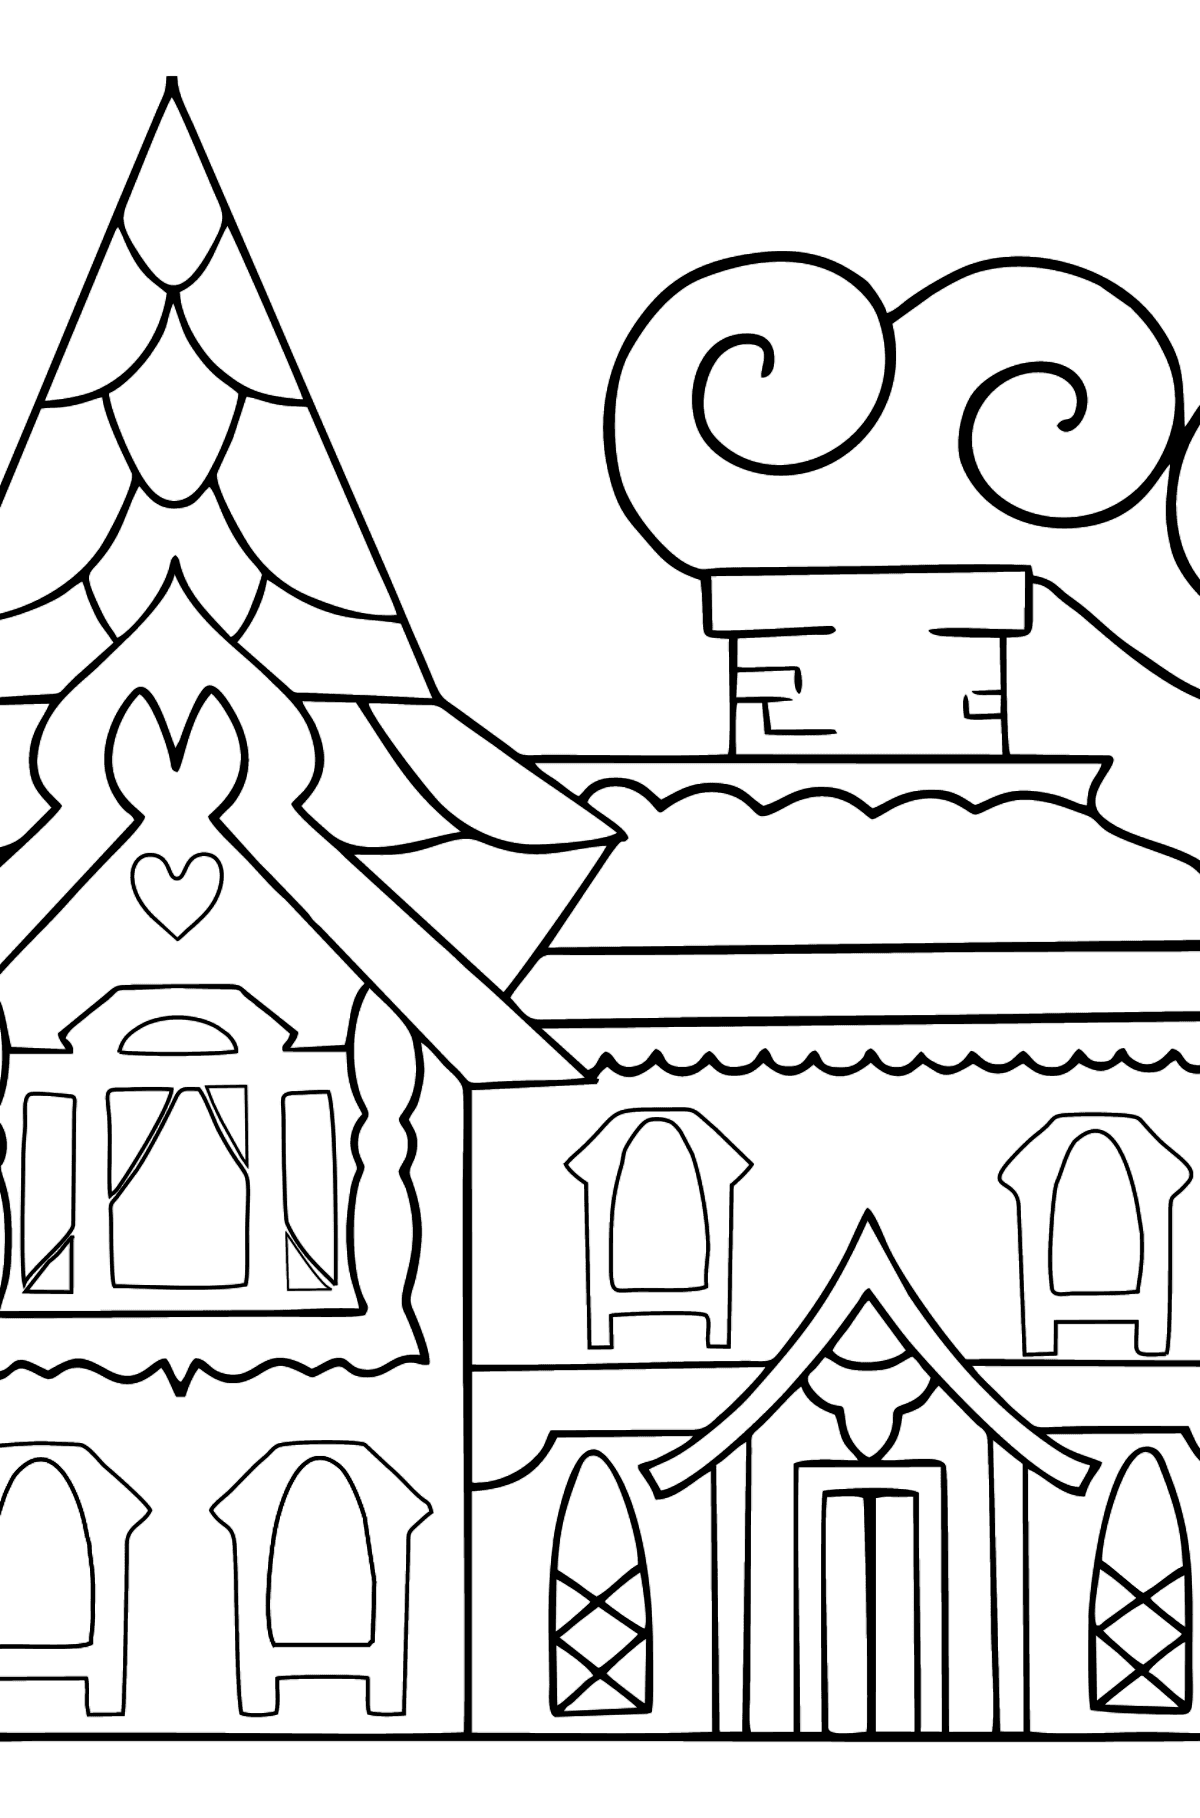 Complex Coloring Page - A House - A Kingdom of Storytellers - Coloring Pages for Kids